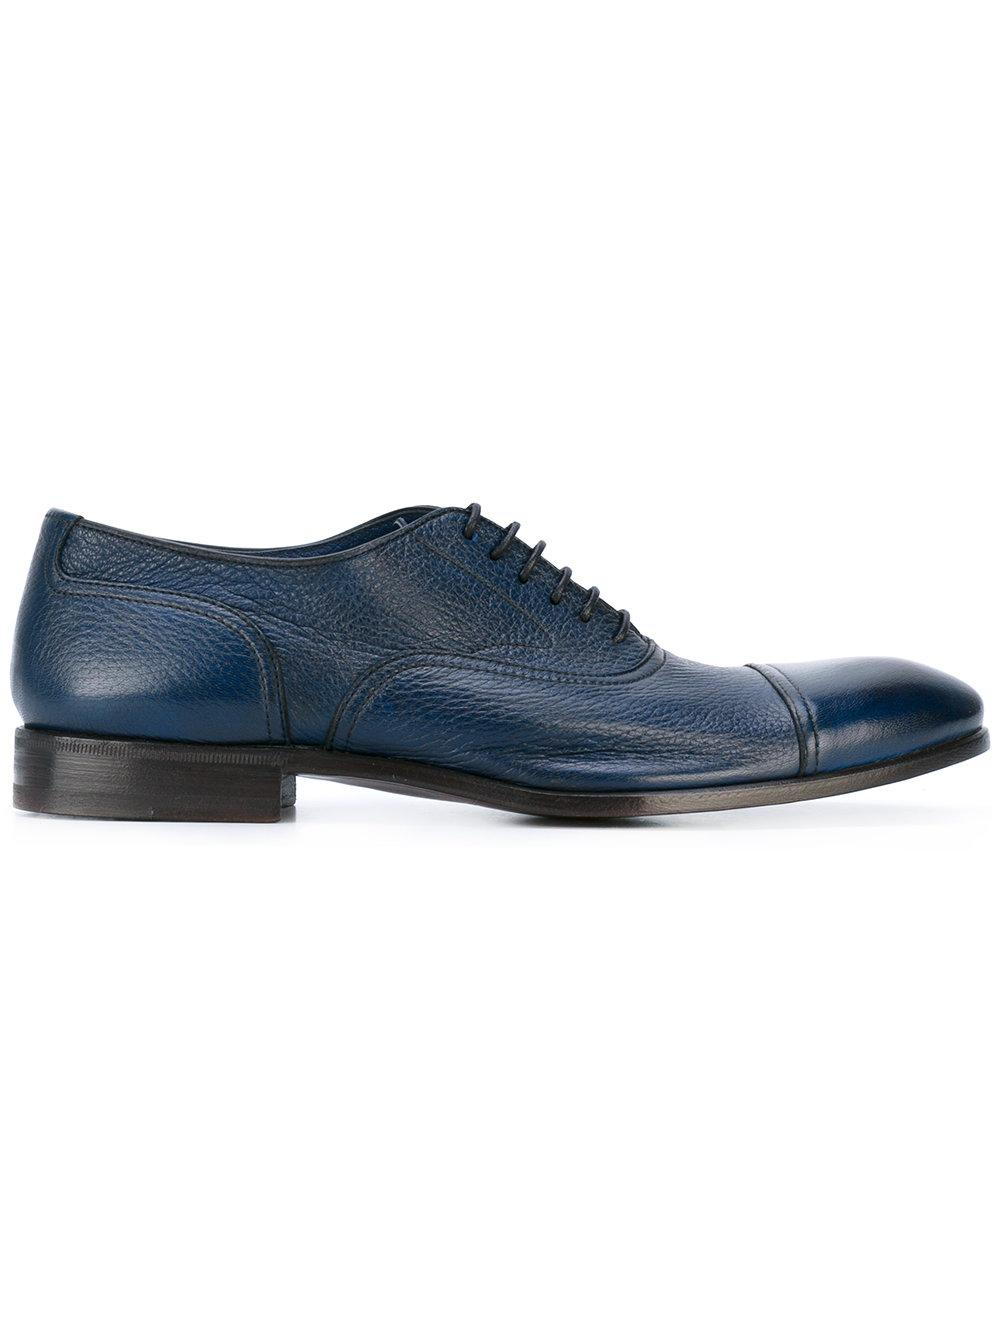 Henderson Oxford Shoes In Blue For Men | Lyst